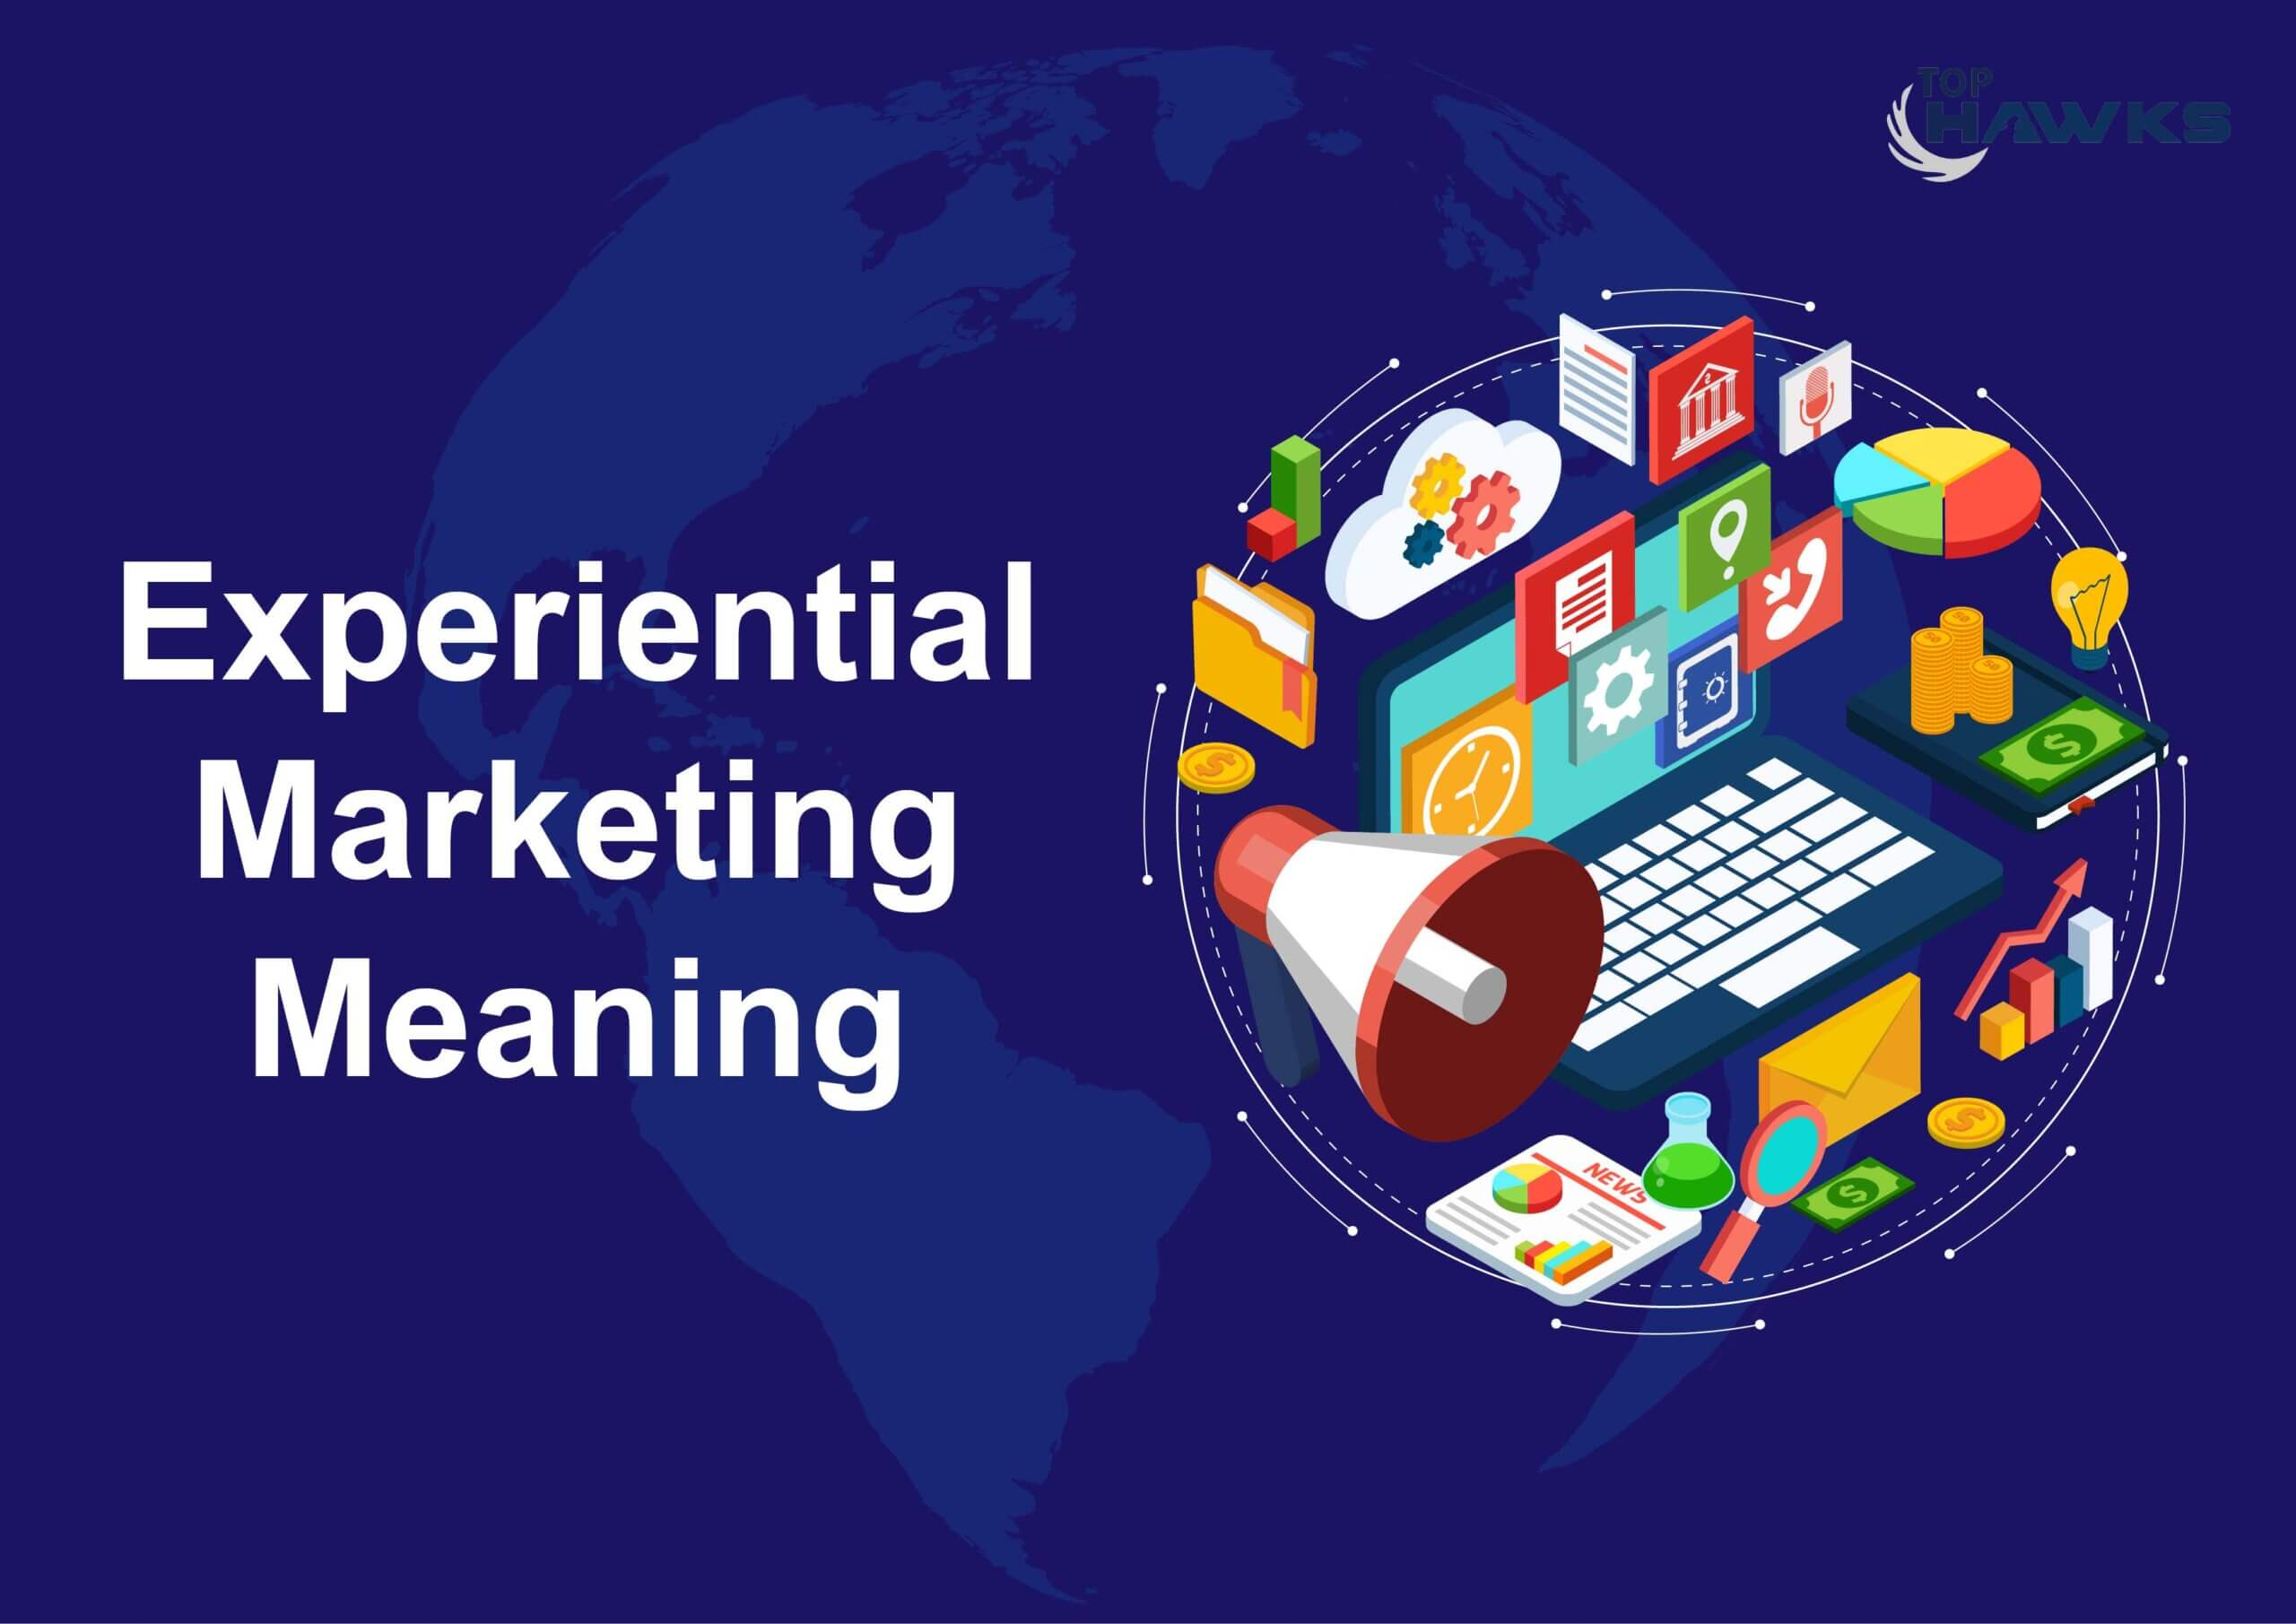 IMPACT OF EXPERIENTIAL MARKETING ON CUSTOMER'S MIND